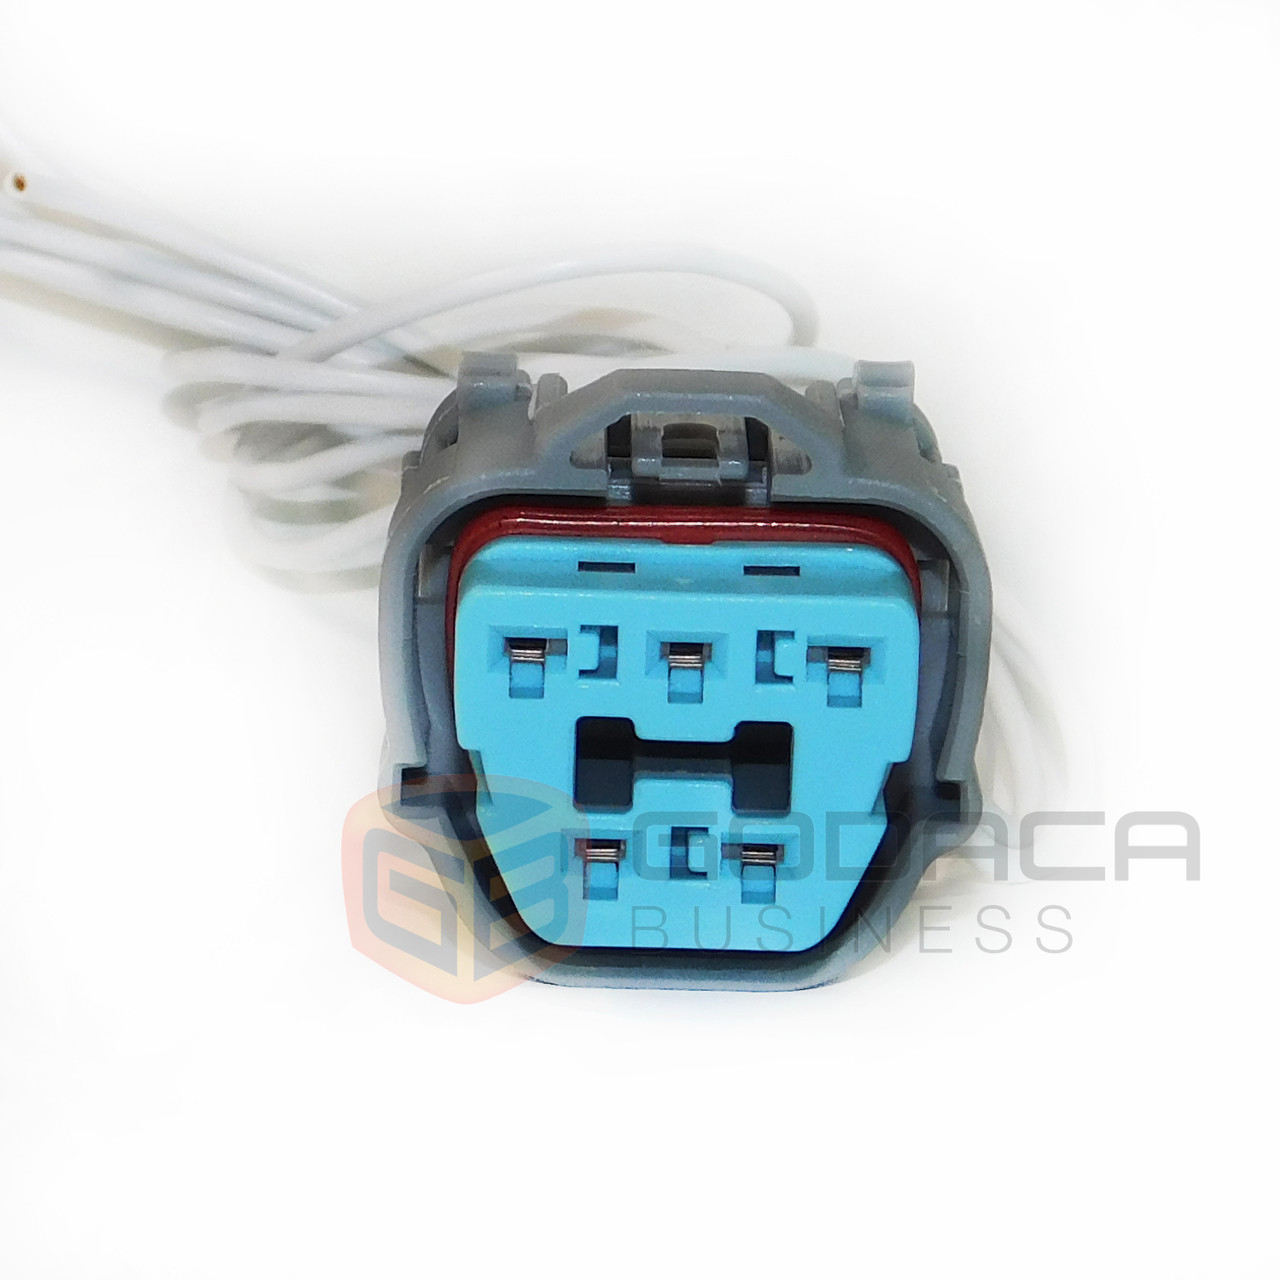 Connector Fuel Pump Harness Pigtail For Honda Civic Accord